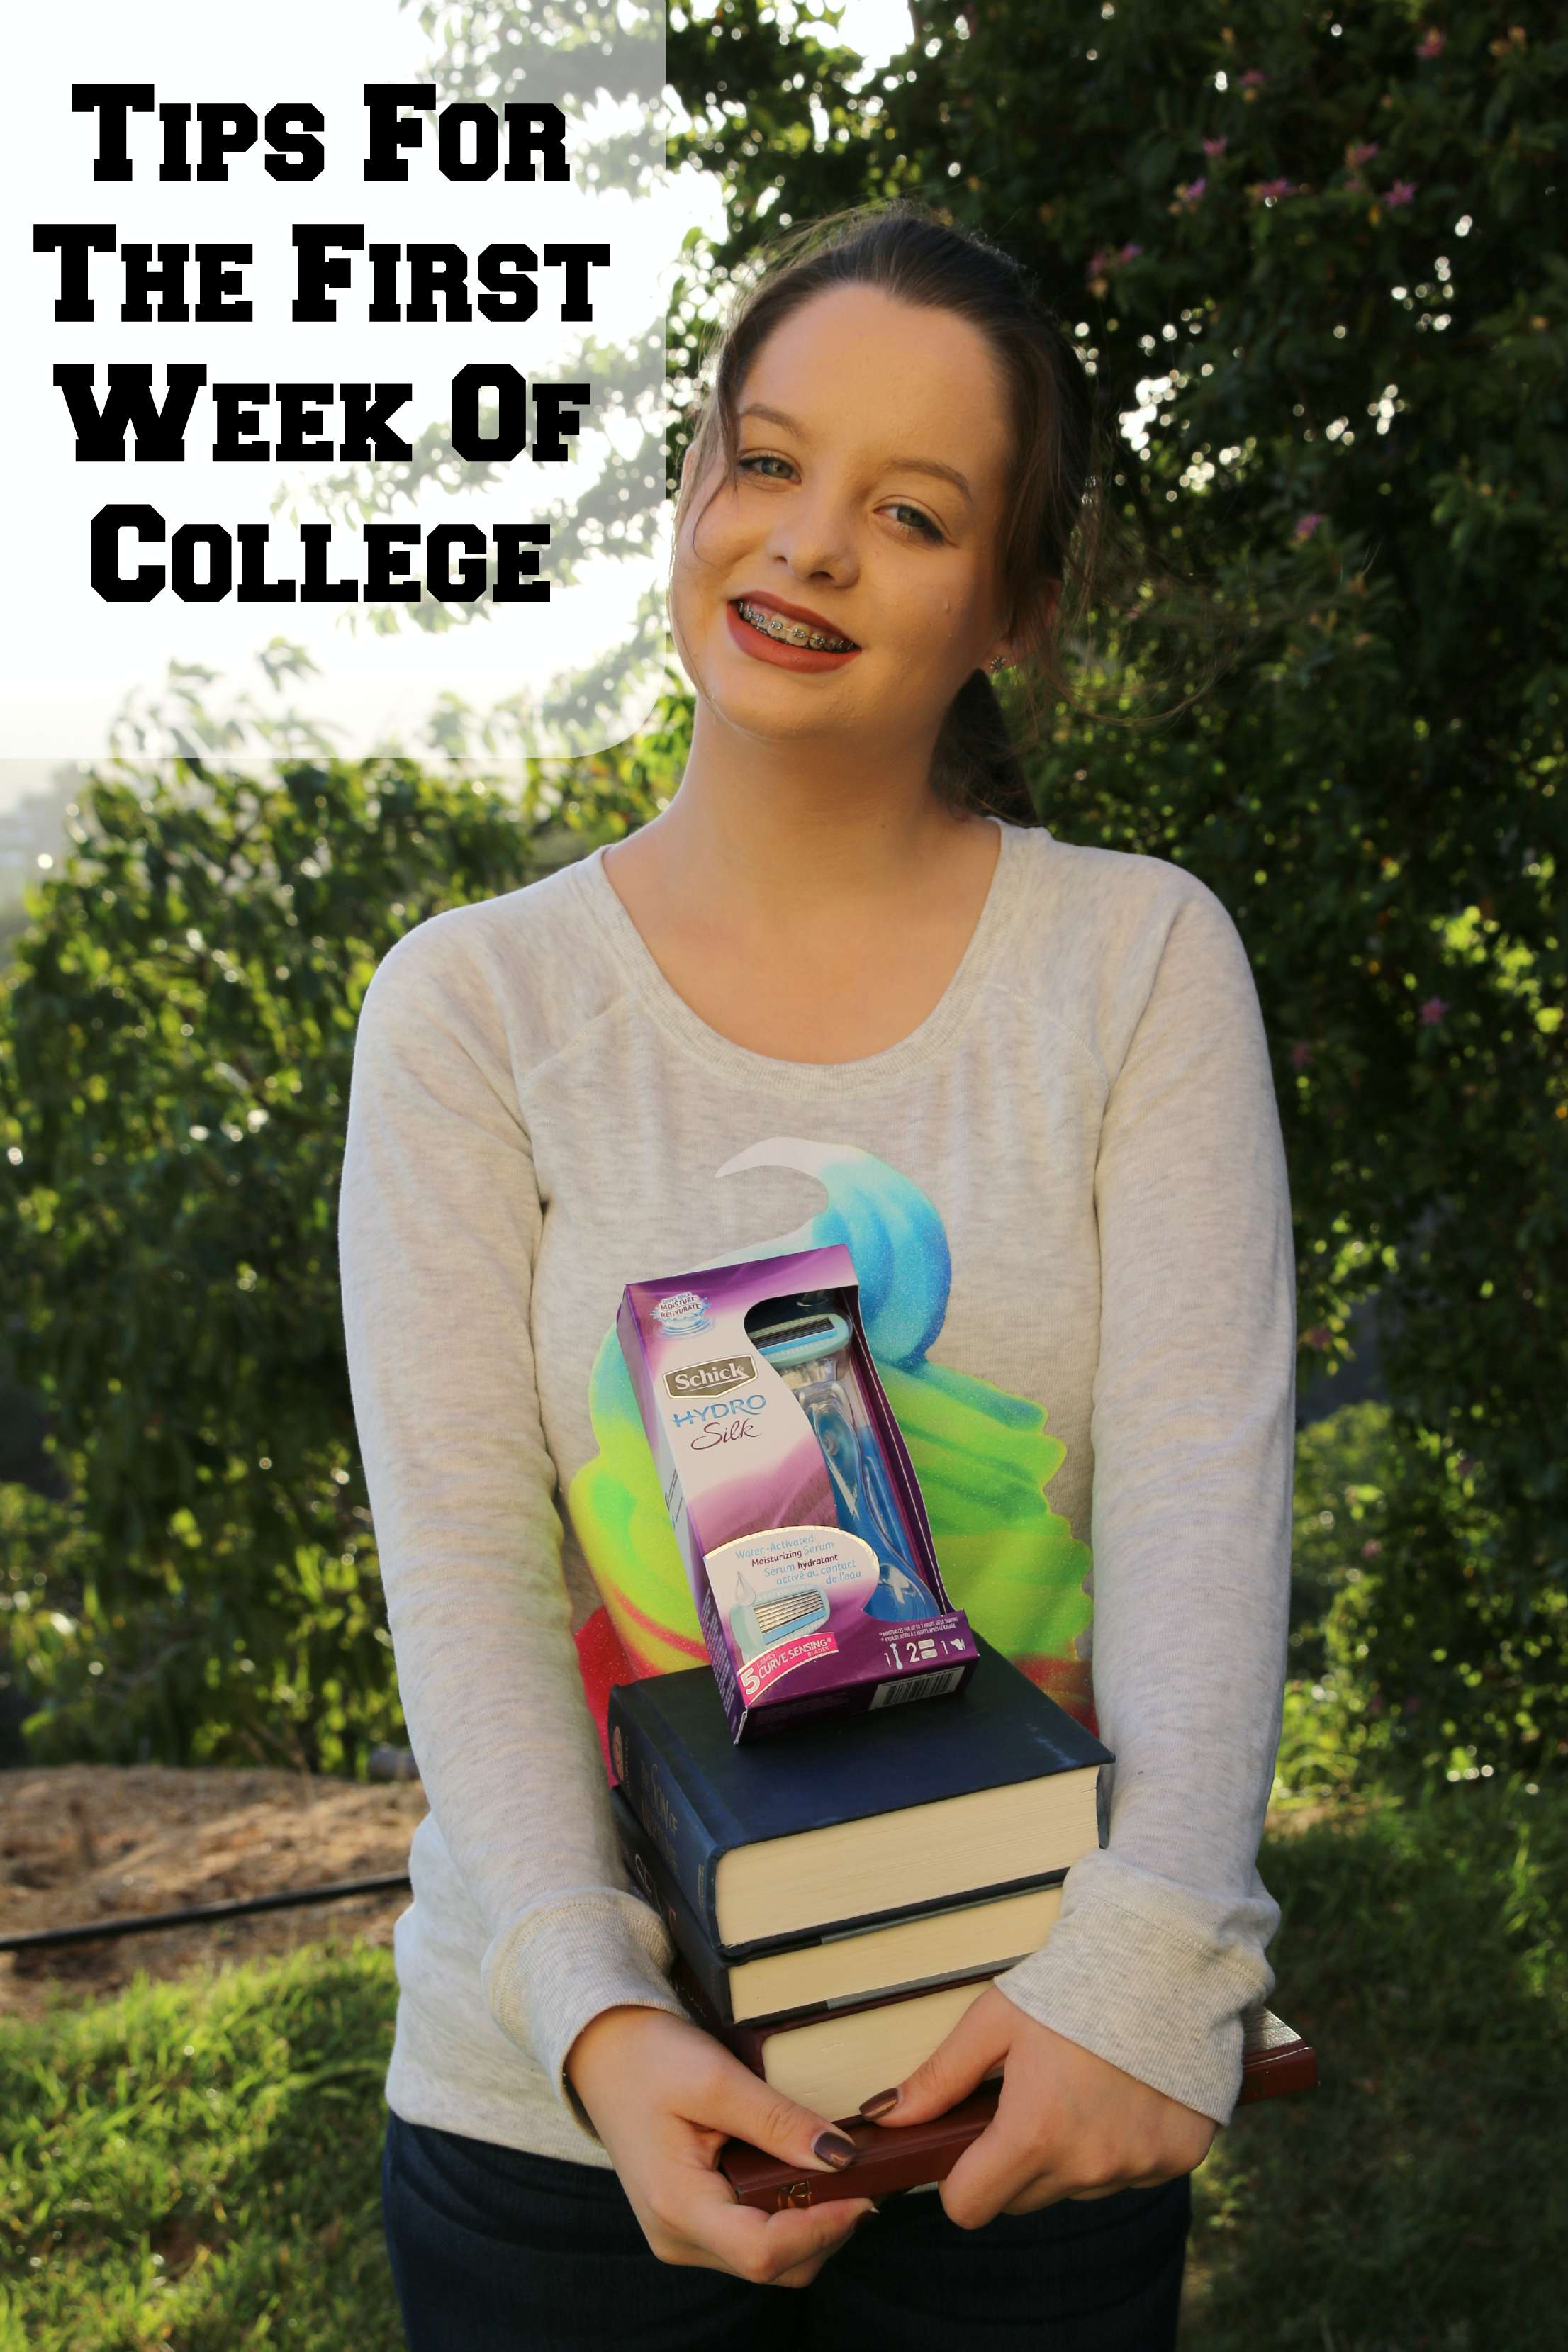 Tips For The First Week Of College